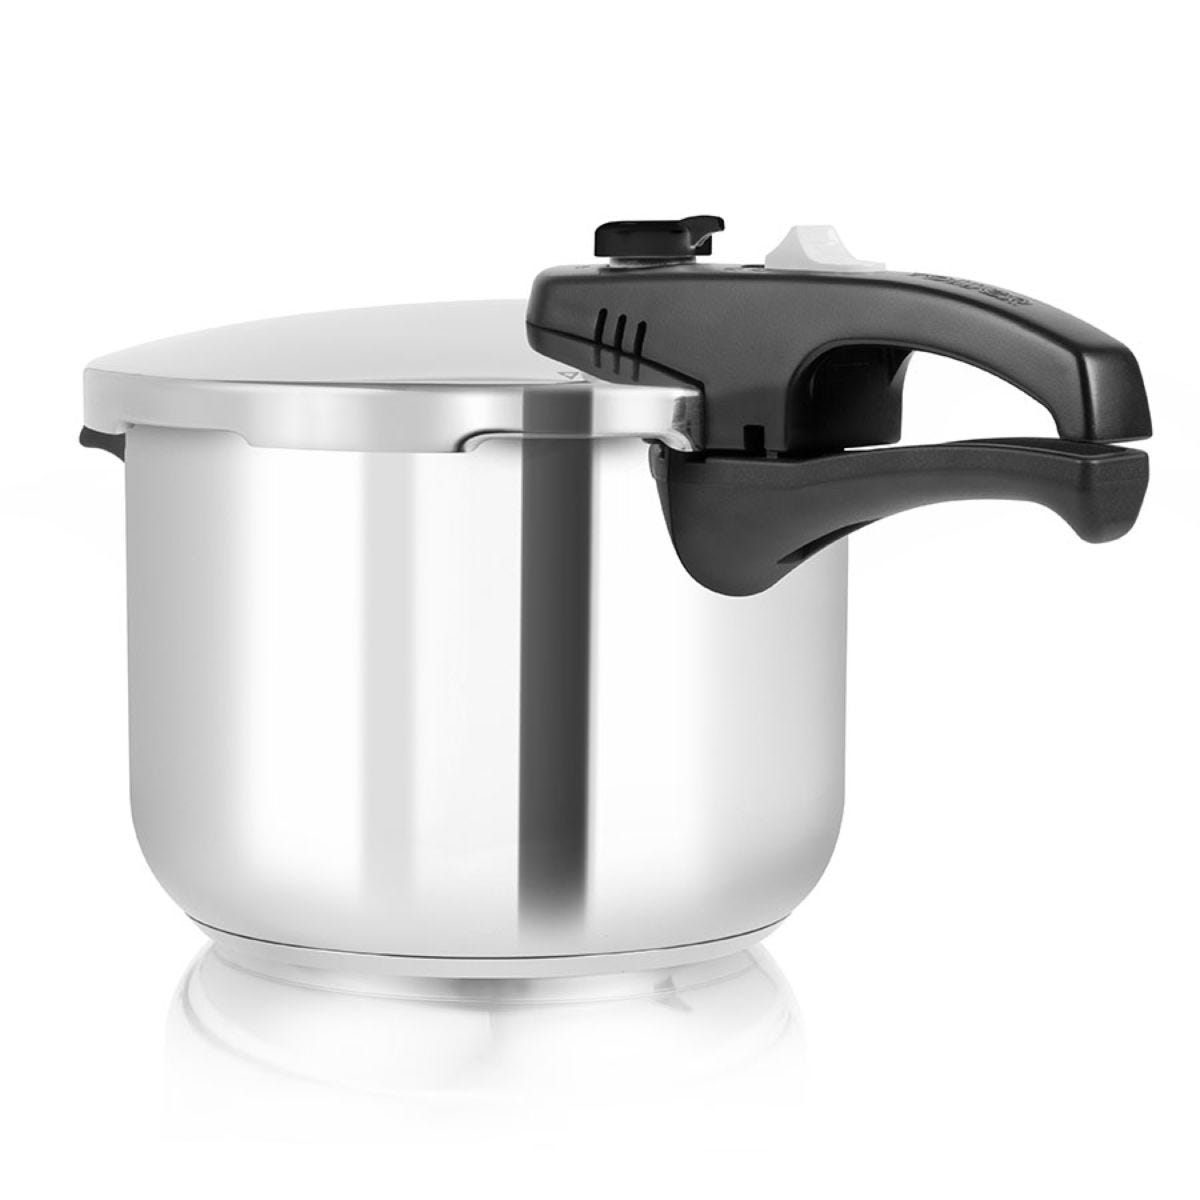 Tower 6L Pressure Cooker